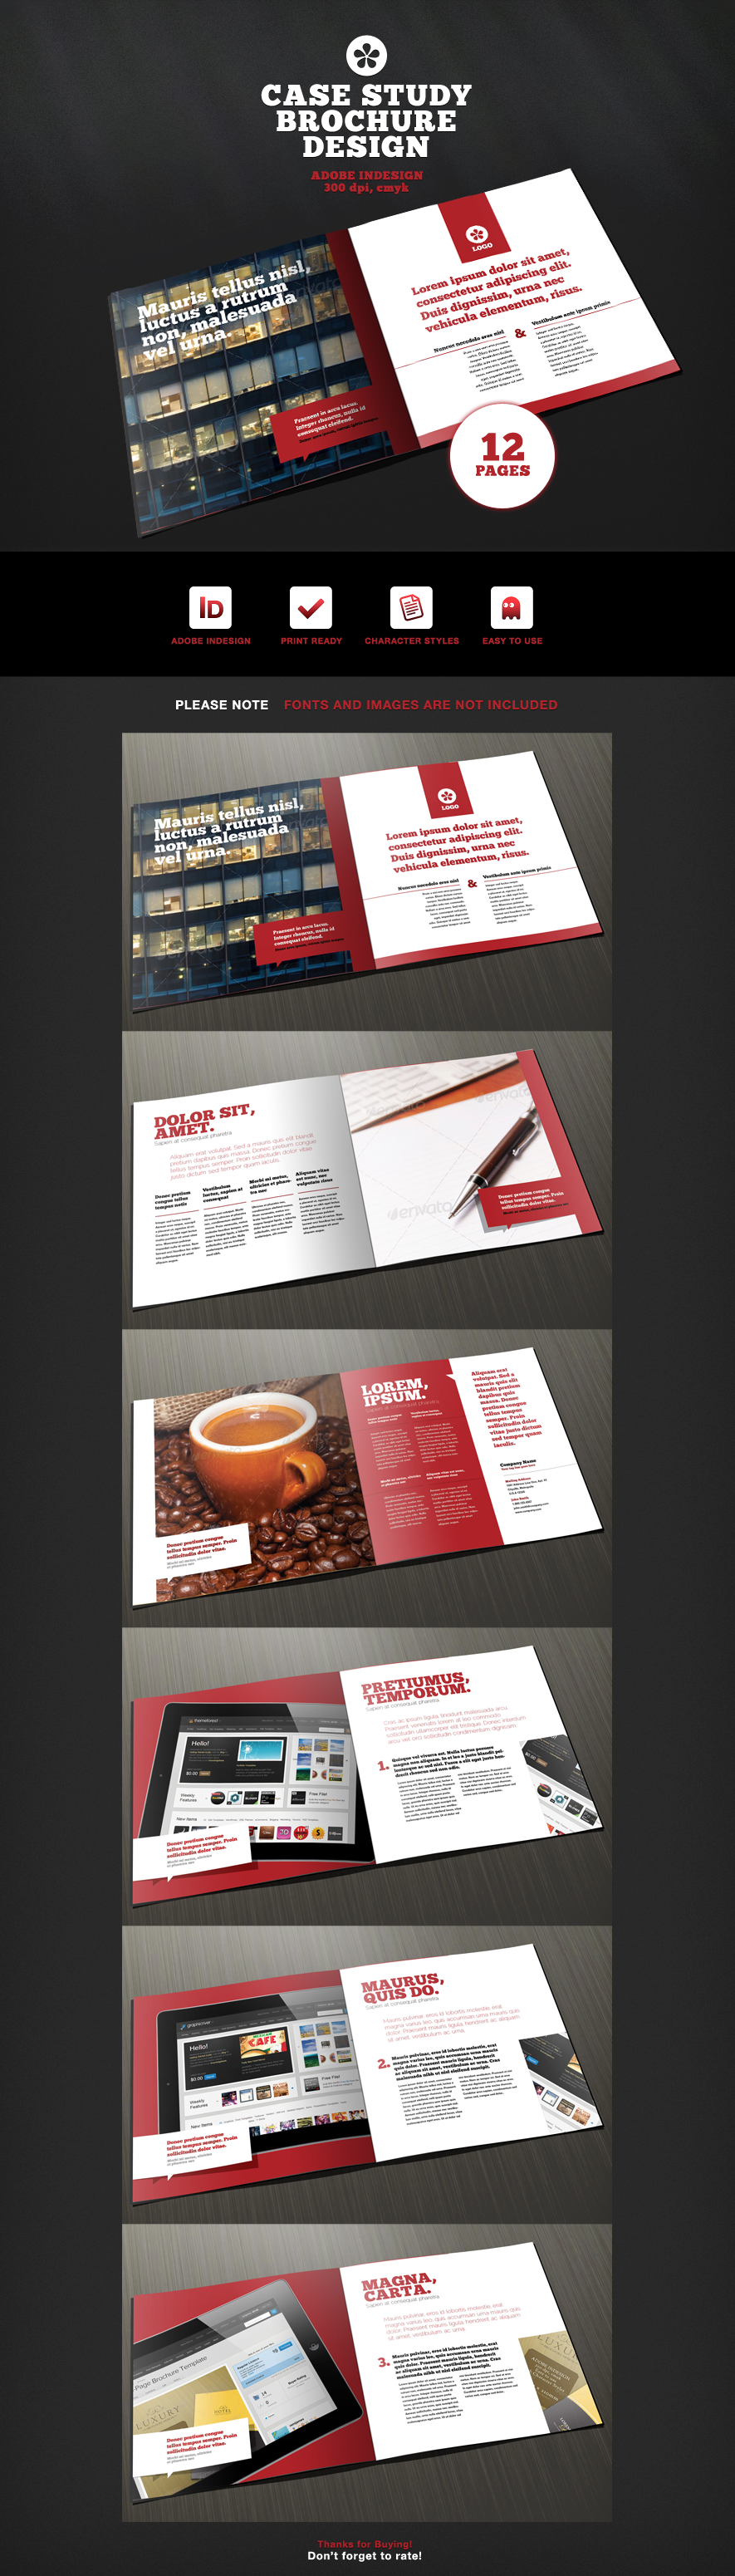 12 page brochure template 12 page case study brochure template by ramijames on